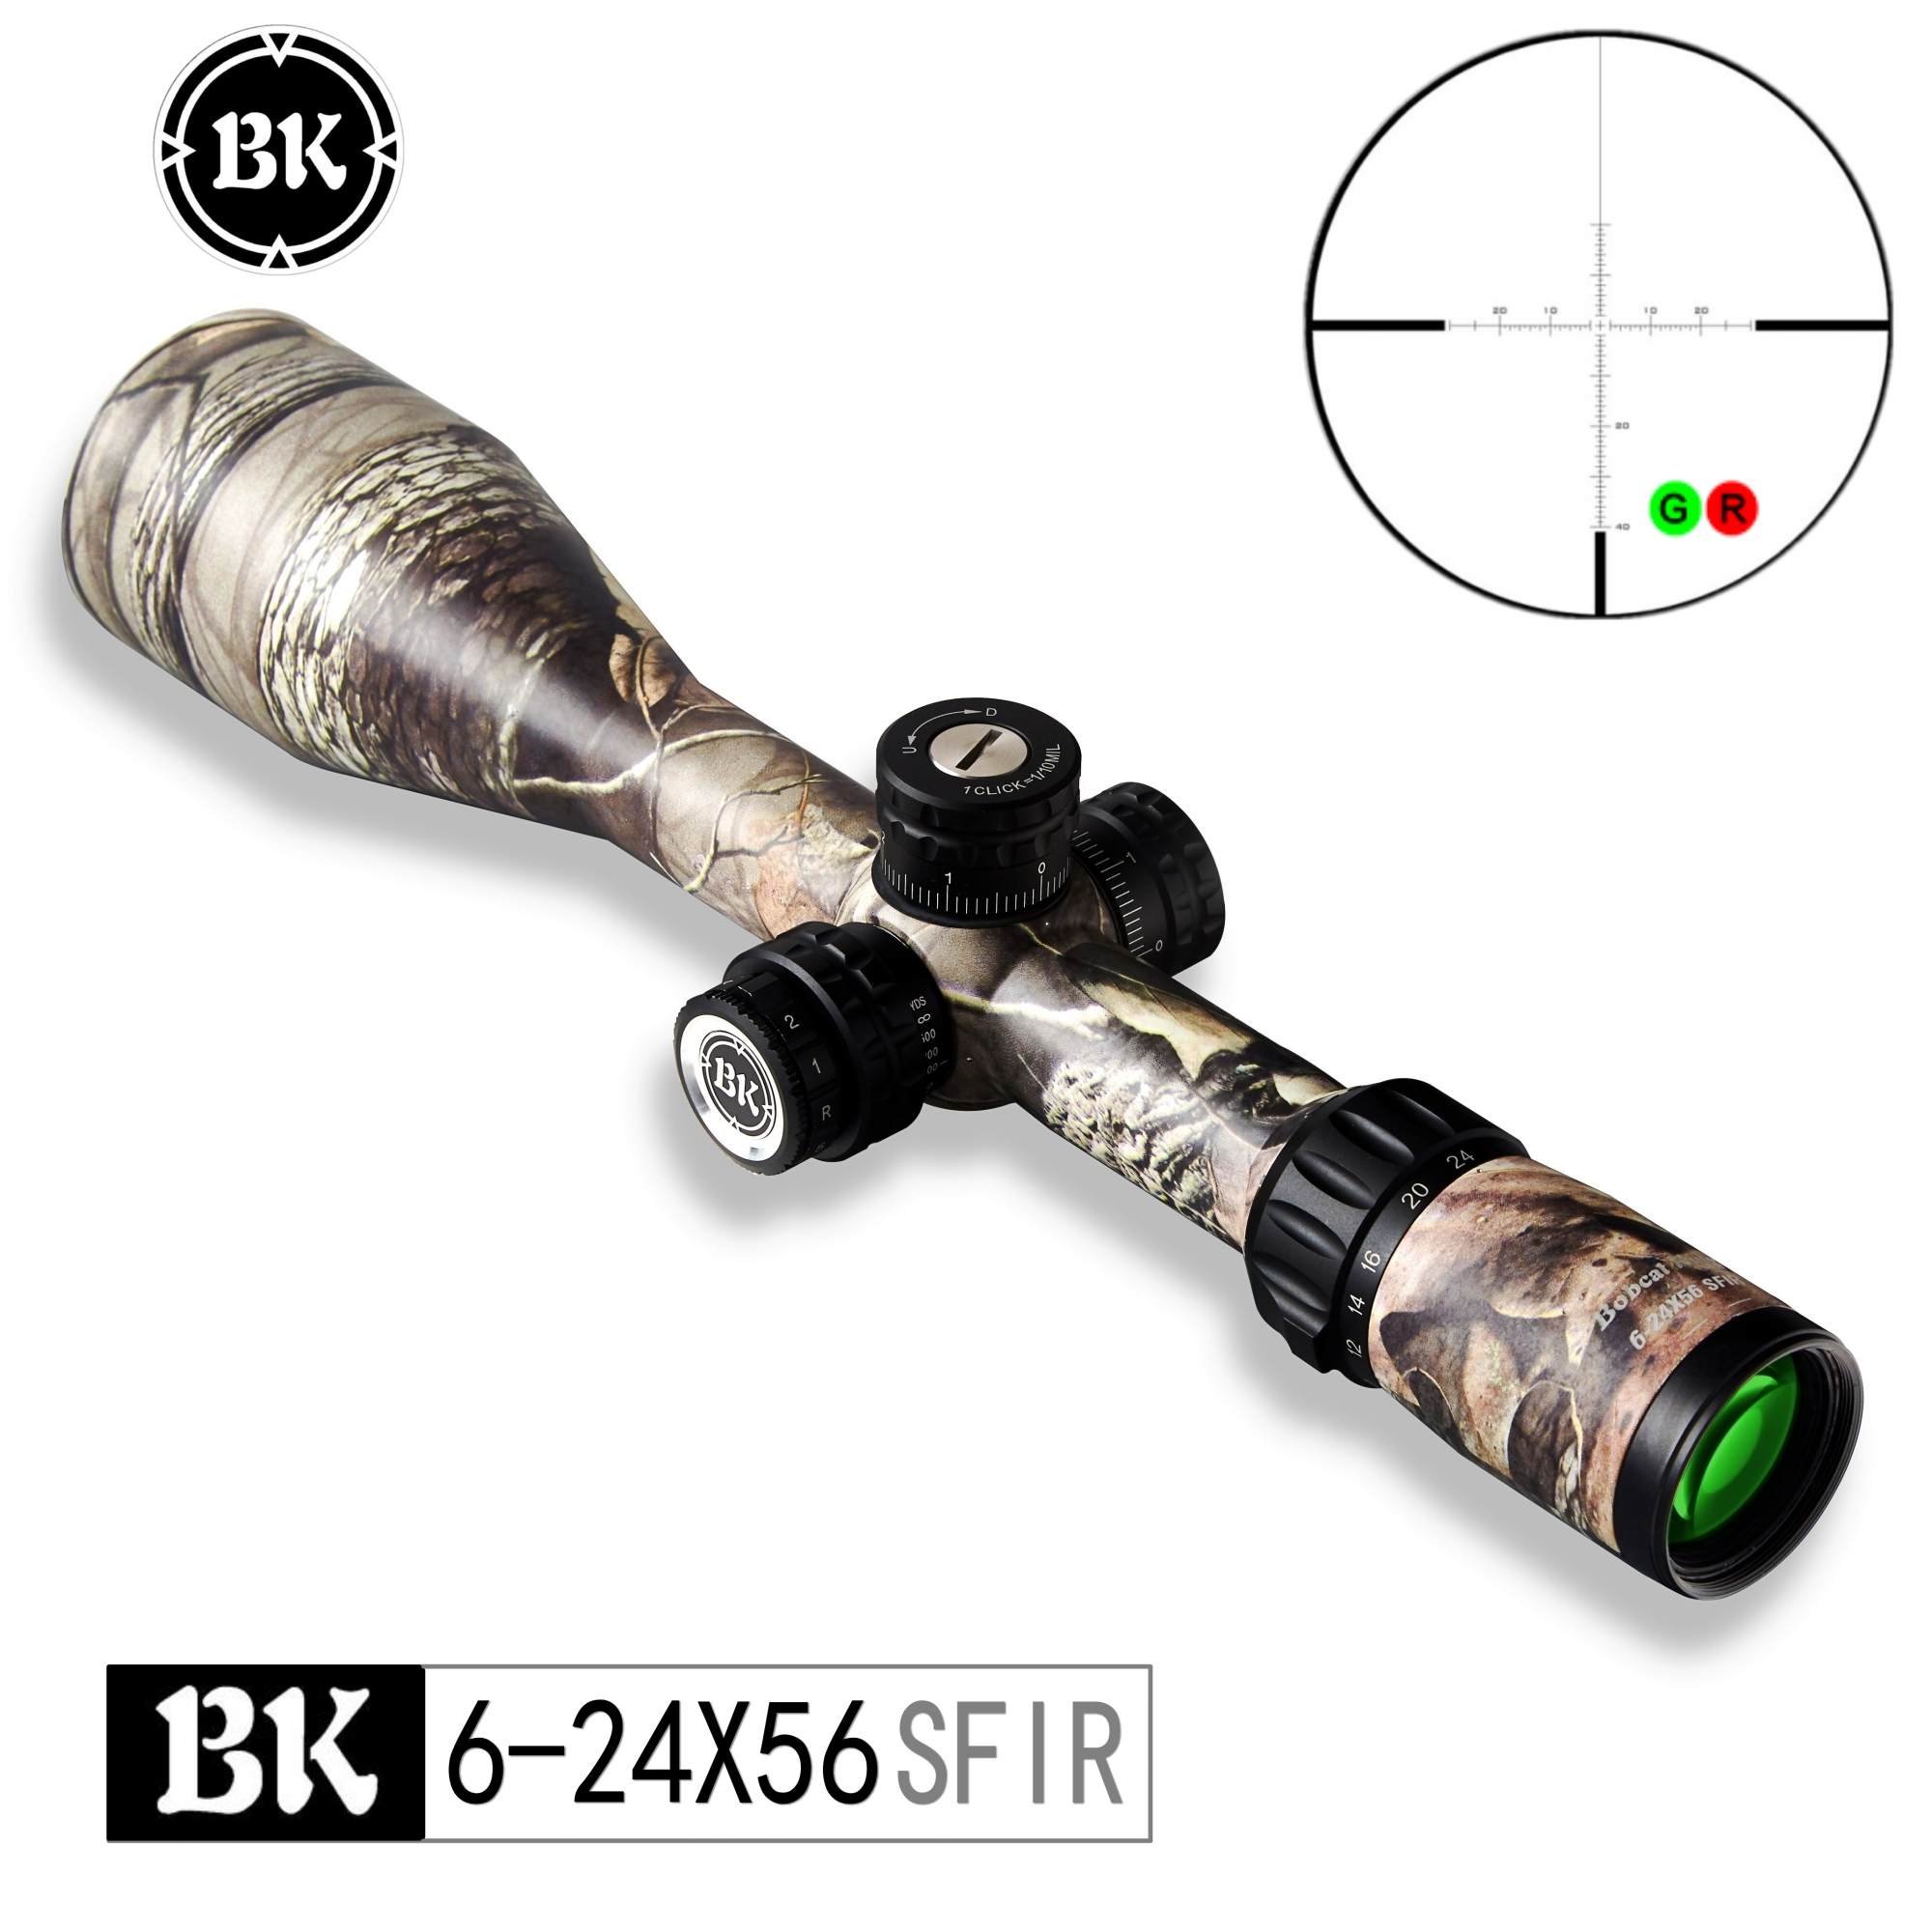 Bobcat King 6-24X56 SFIR Rifle Scopes Airsoft Hunting Scope Traffic Light Illumination Sniper Tactical Optical Sight